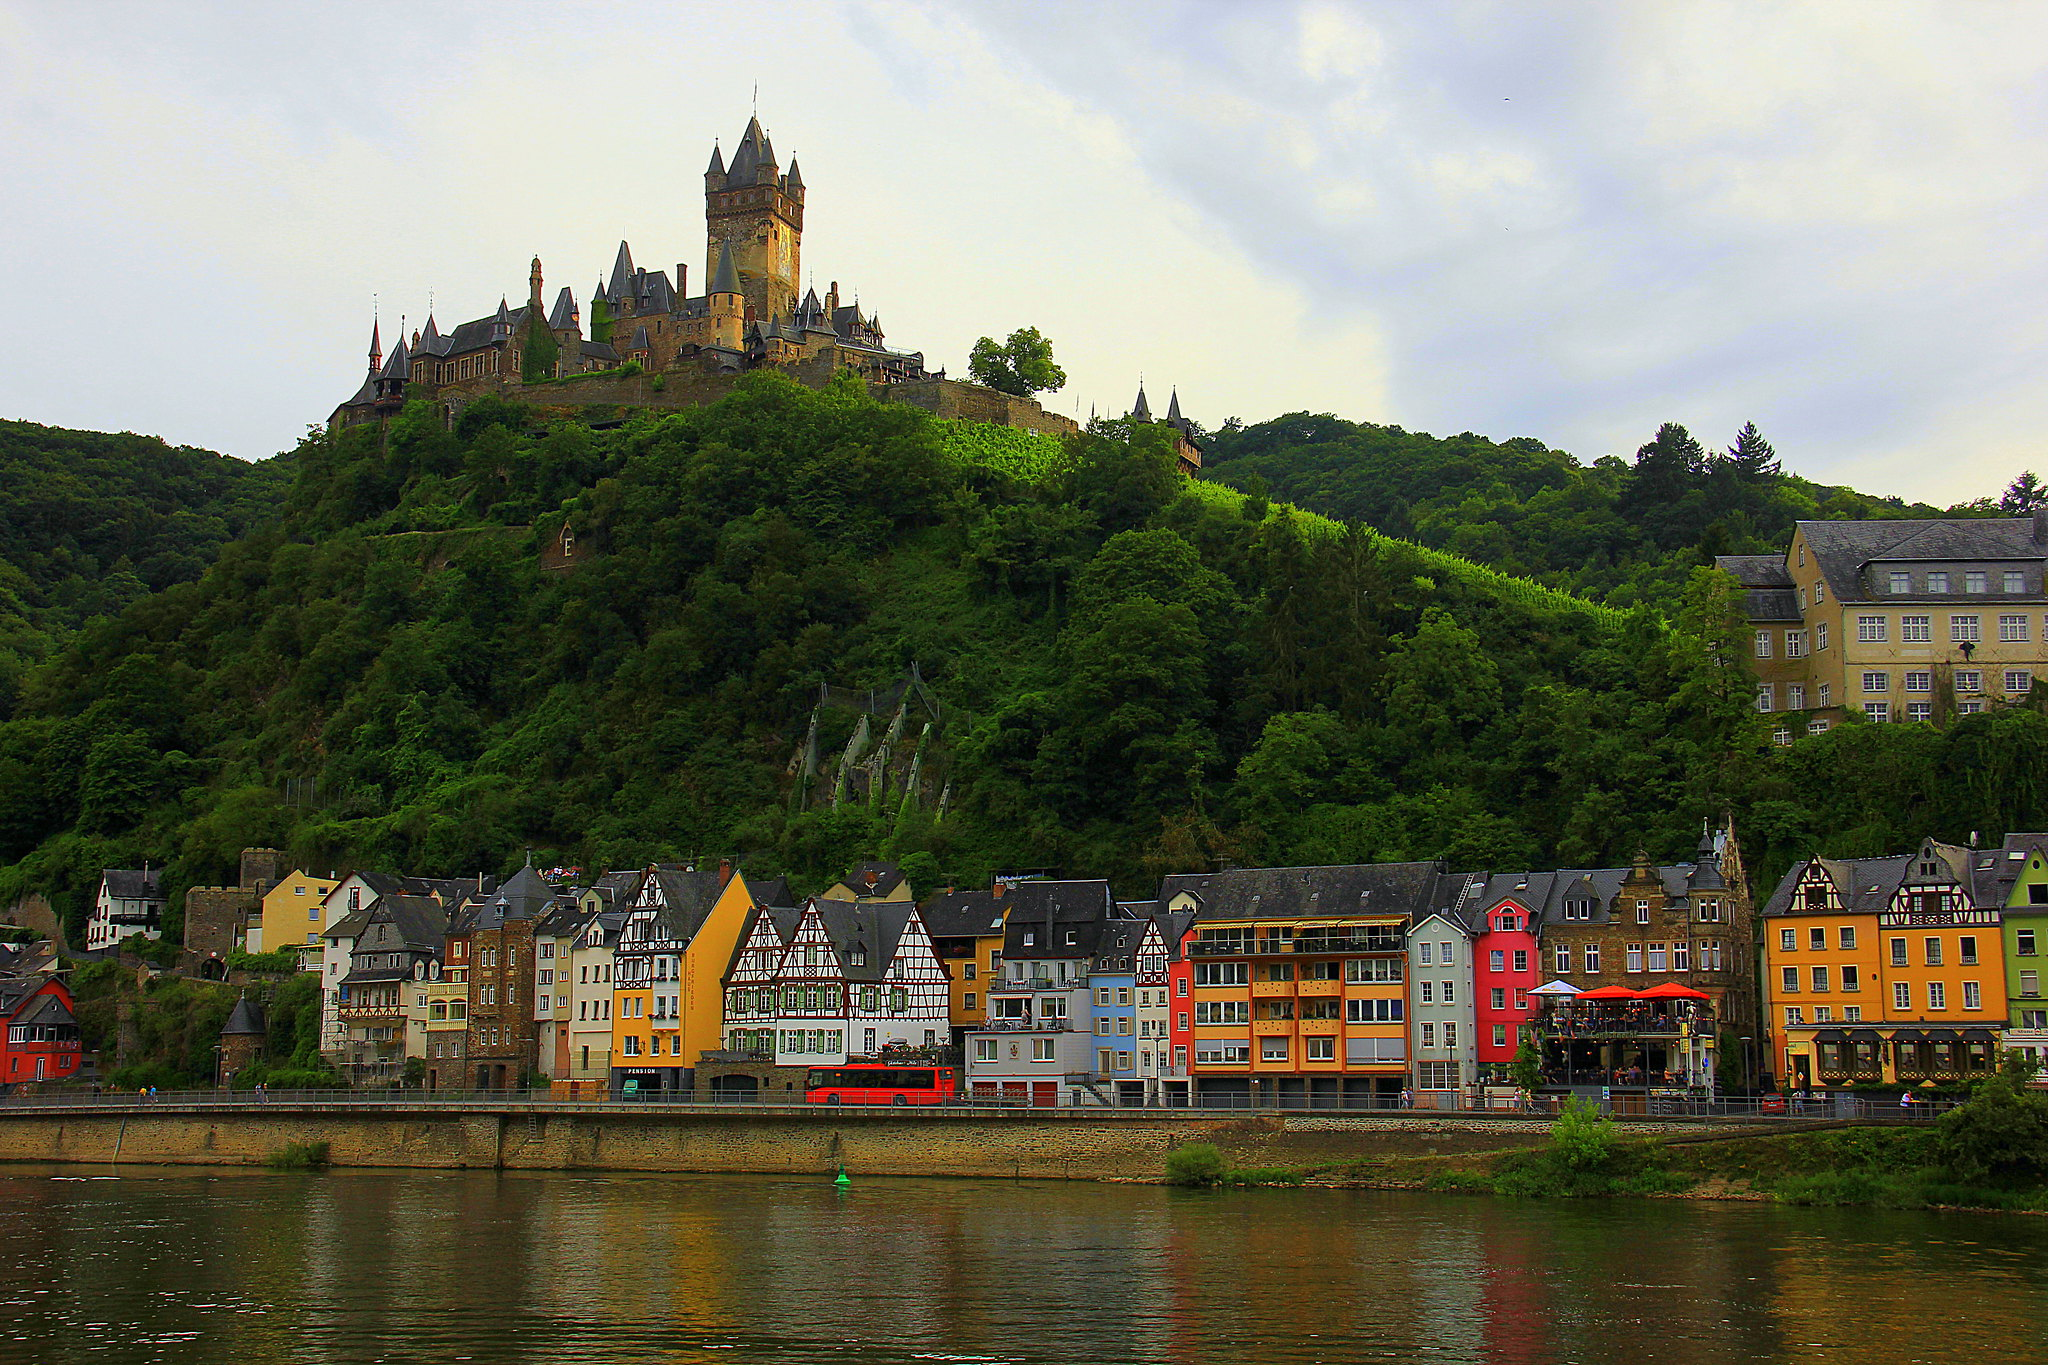 CChem castle can be seen from the Moselle River